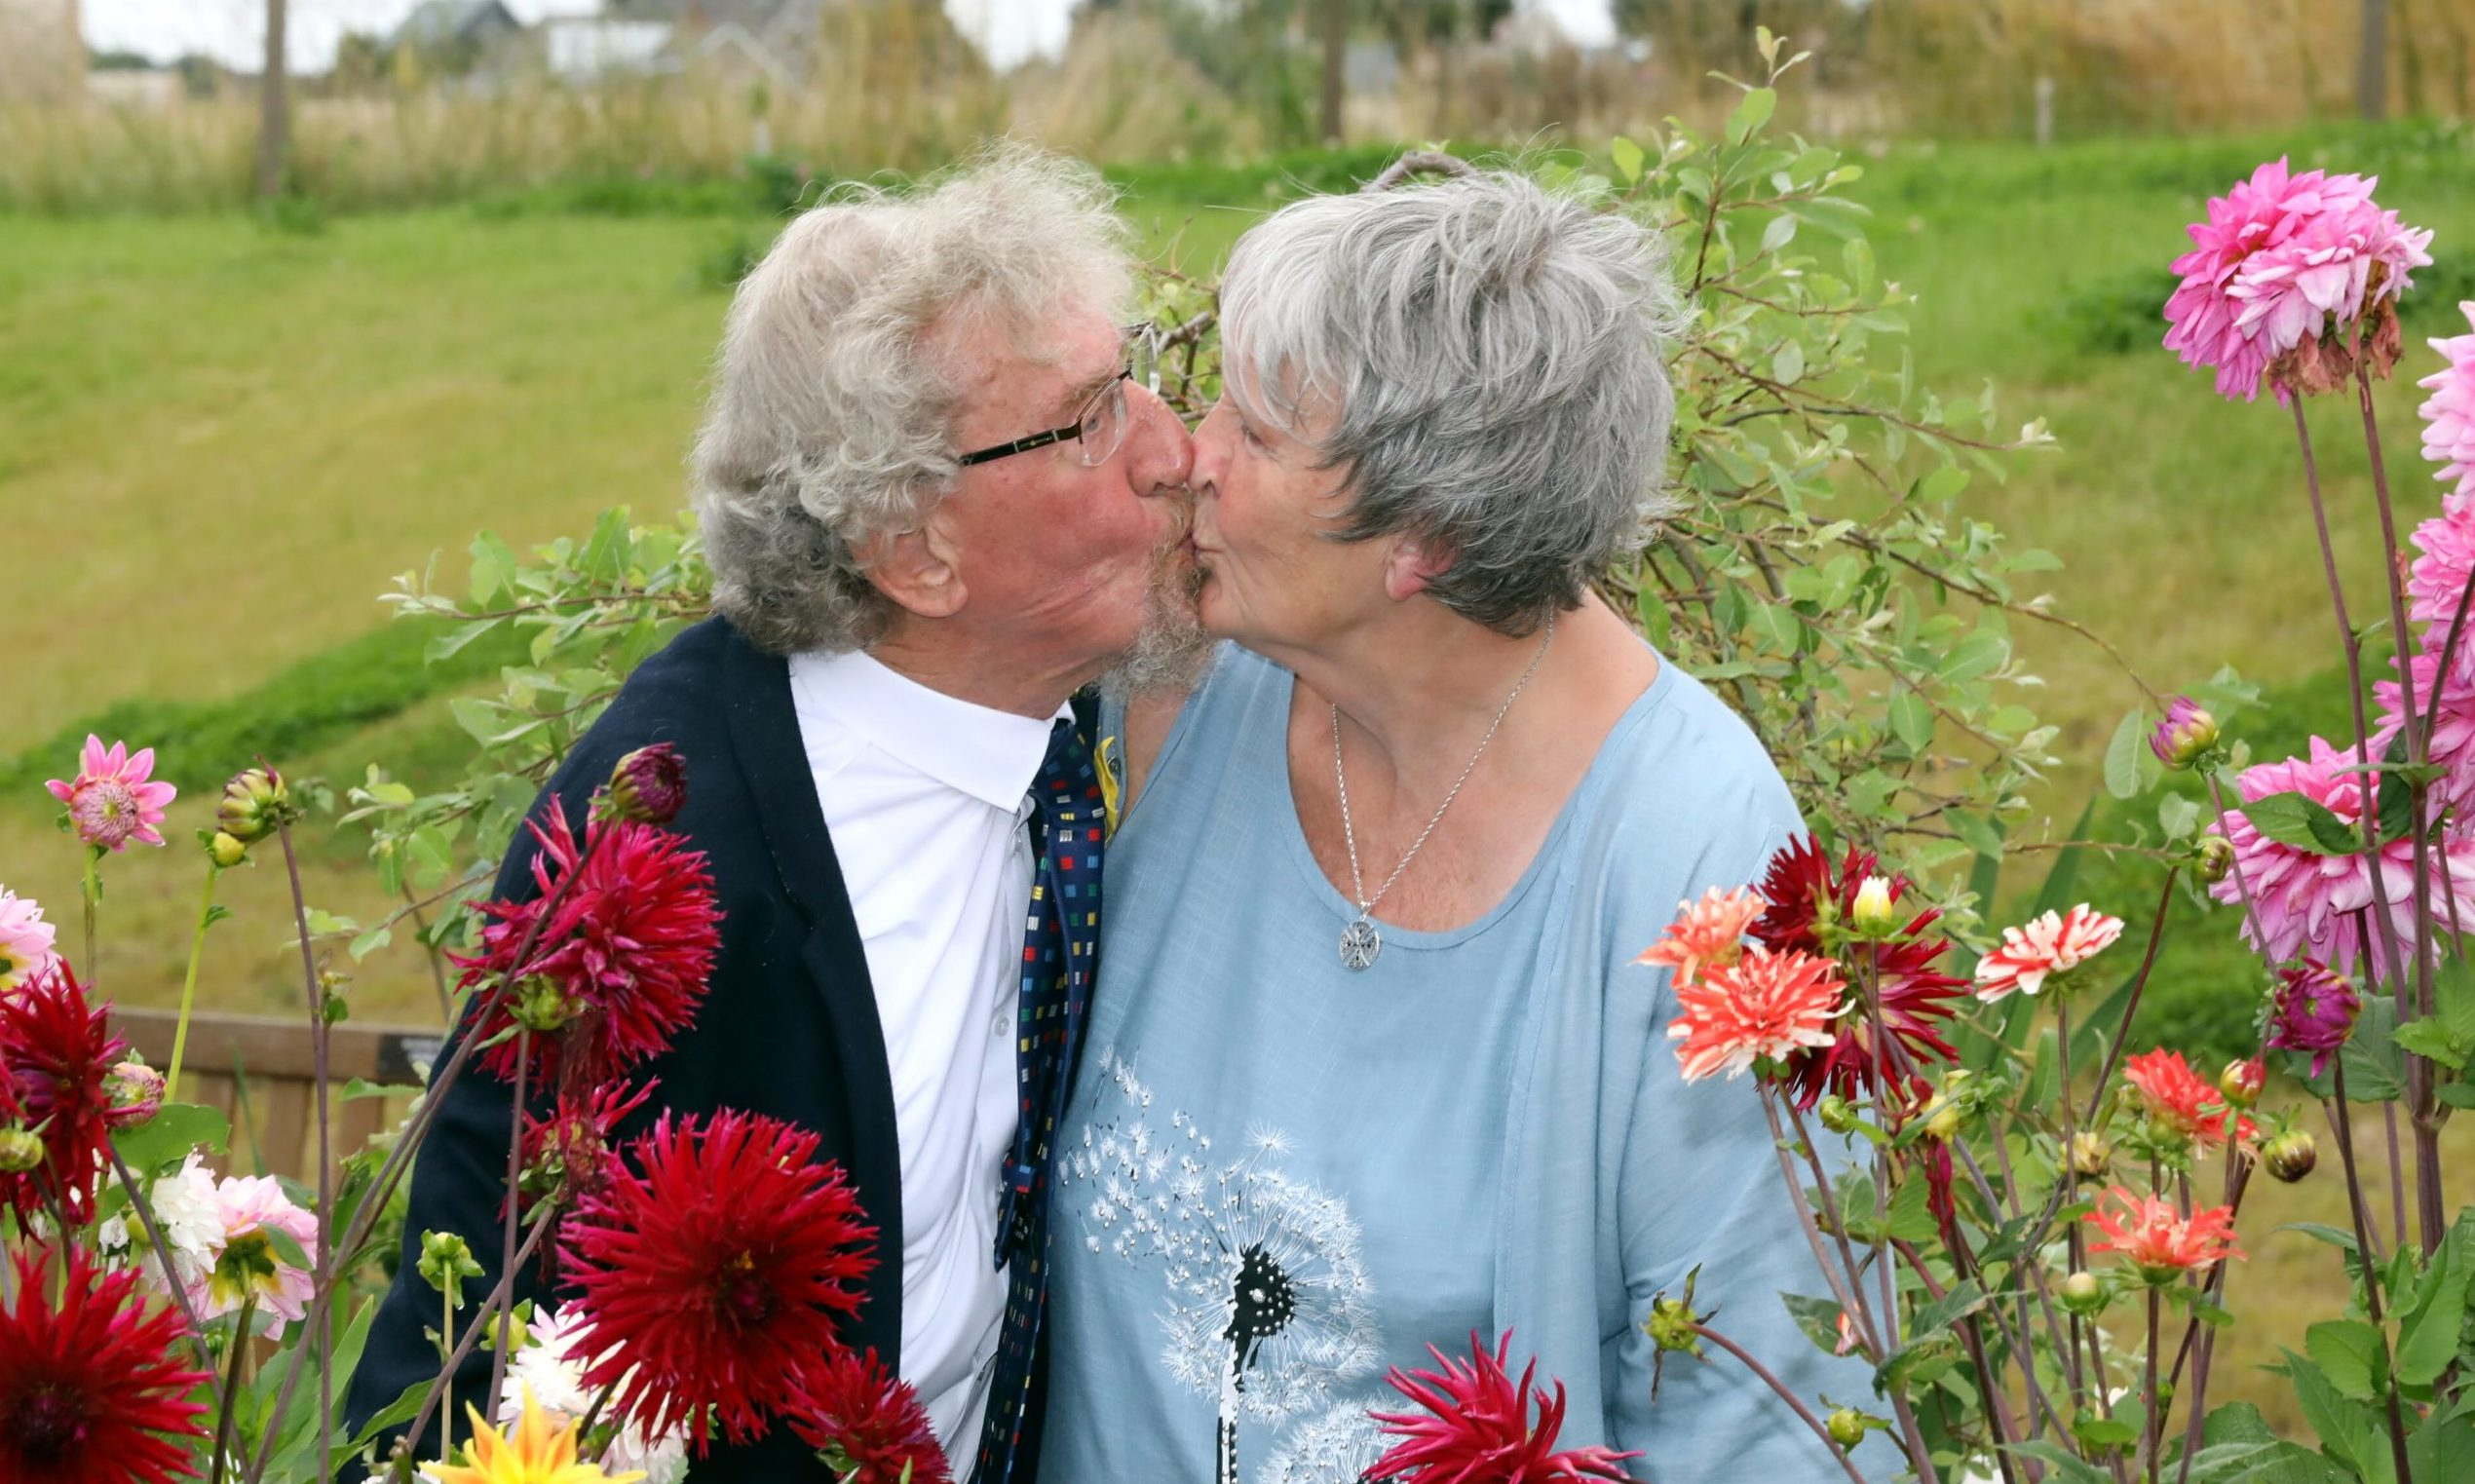 Jim Baleaves and Ann Marshall were married at the Madoch Centre in St Madoes.